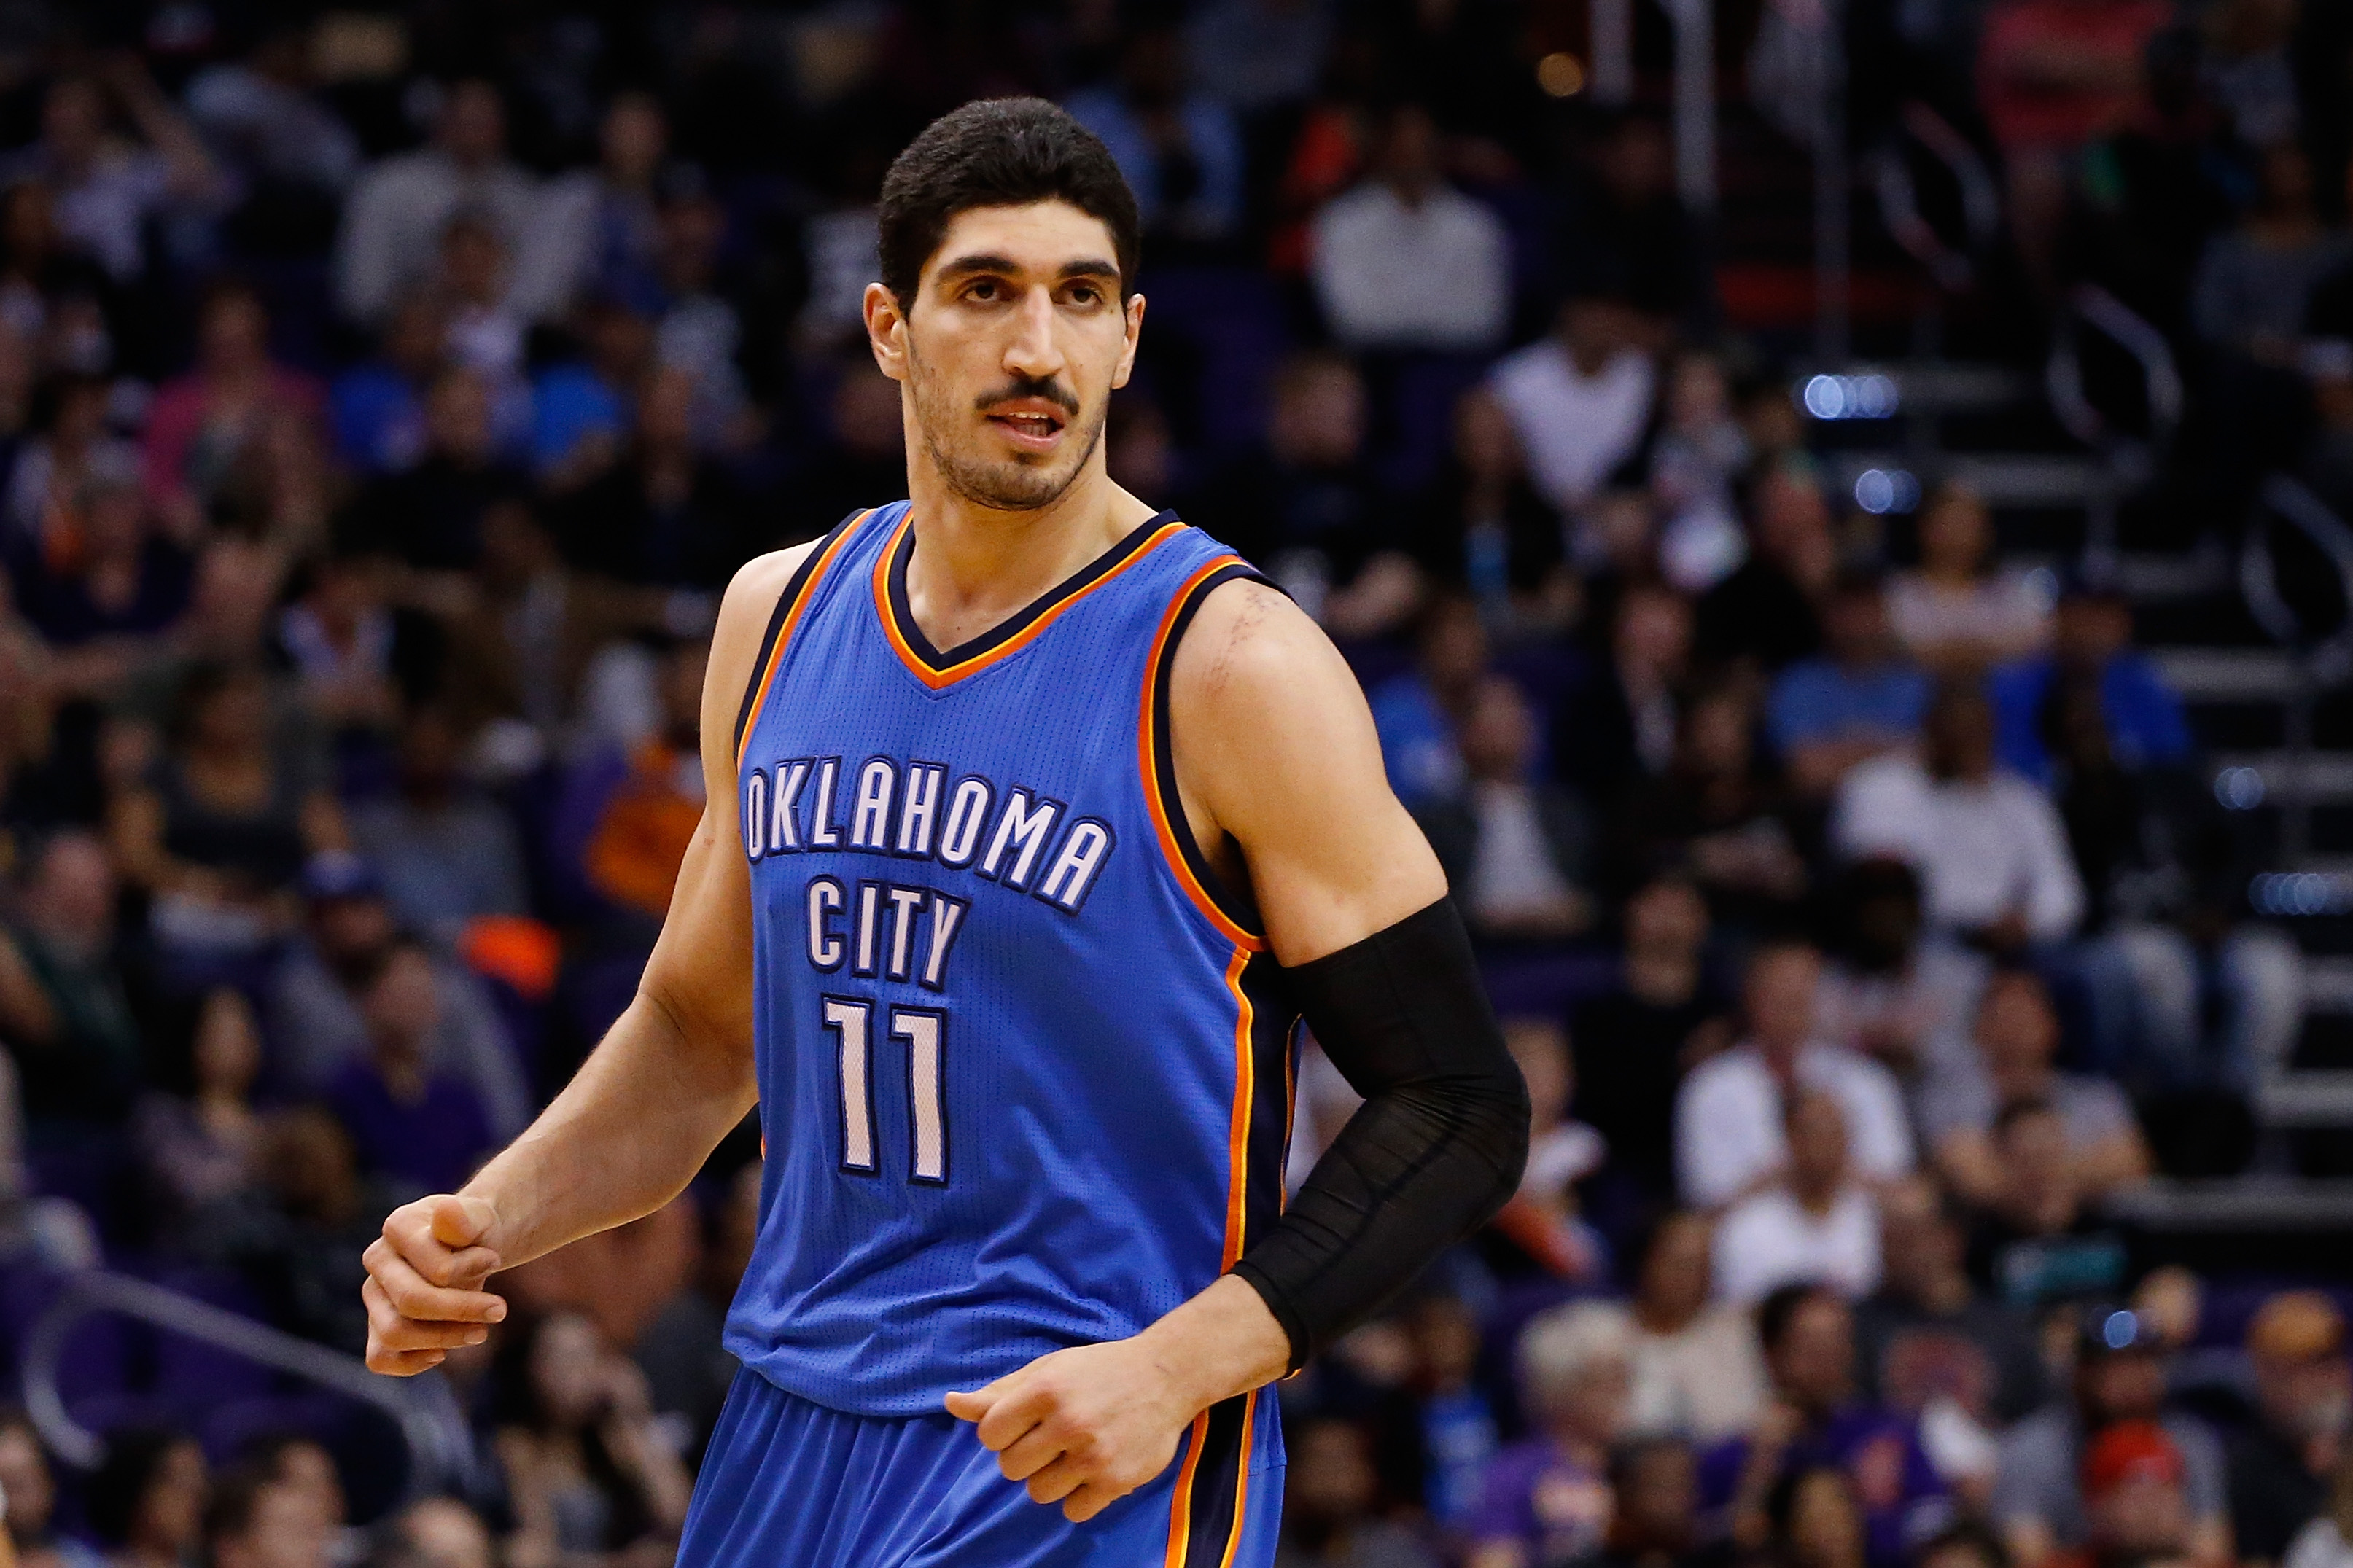 PHOENIX, AZ - FEBRUARY 08:  Enes Kanter #11 of the Oklahoma City Thunder during the NBA game against the Phoenix Suns at Talking Stick Resort Arena